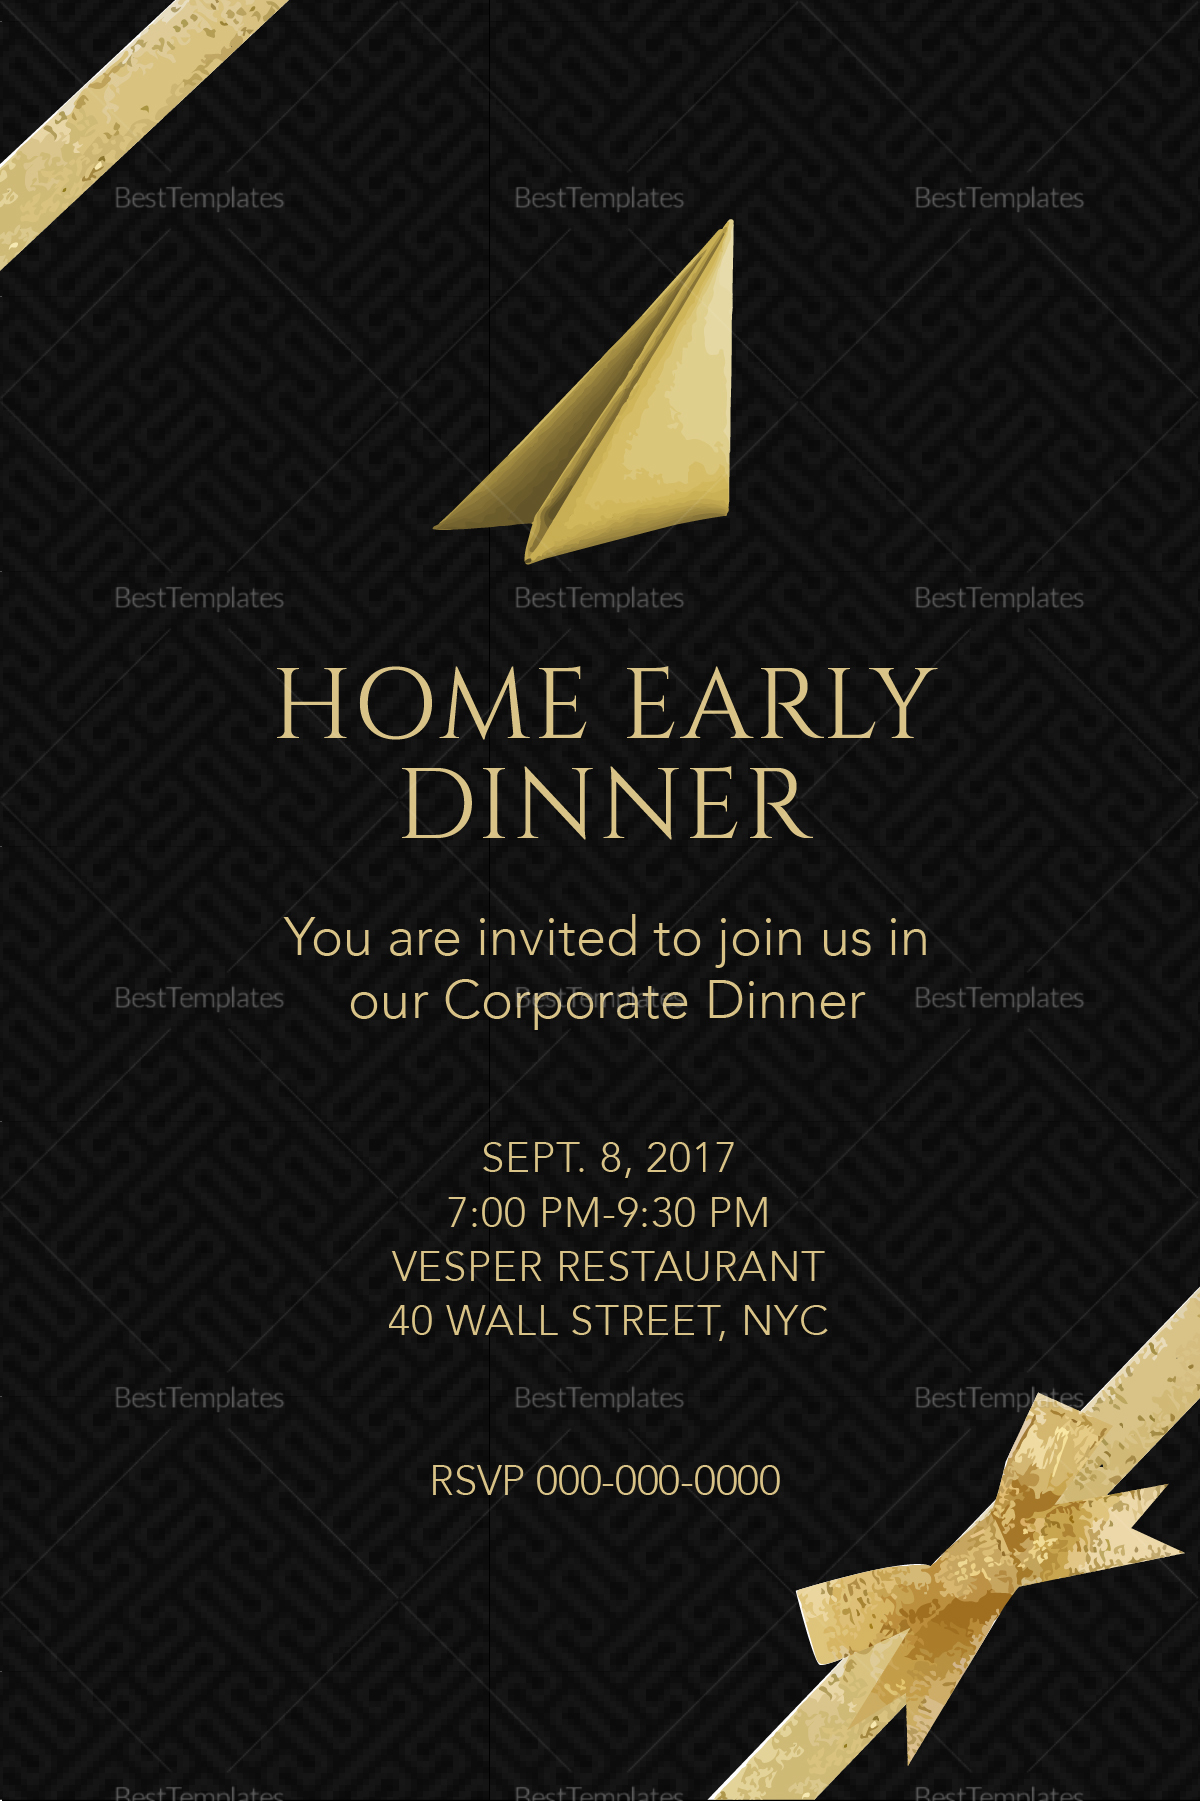 corporate dinner invitation template 28 images business dinner invitation template resume. Black Bedroom Furniture Sets. Home Design Ideas